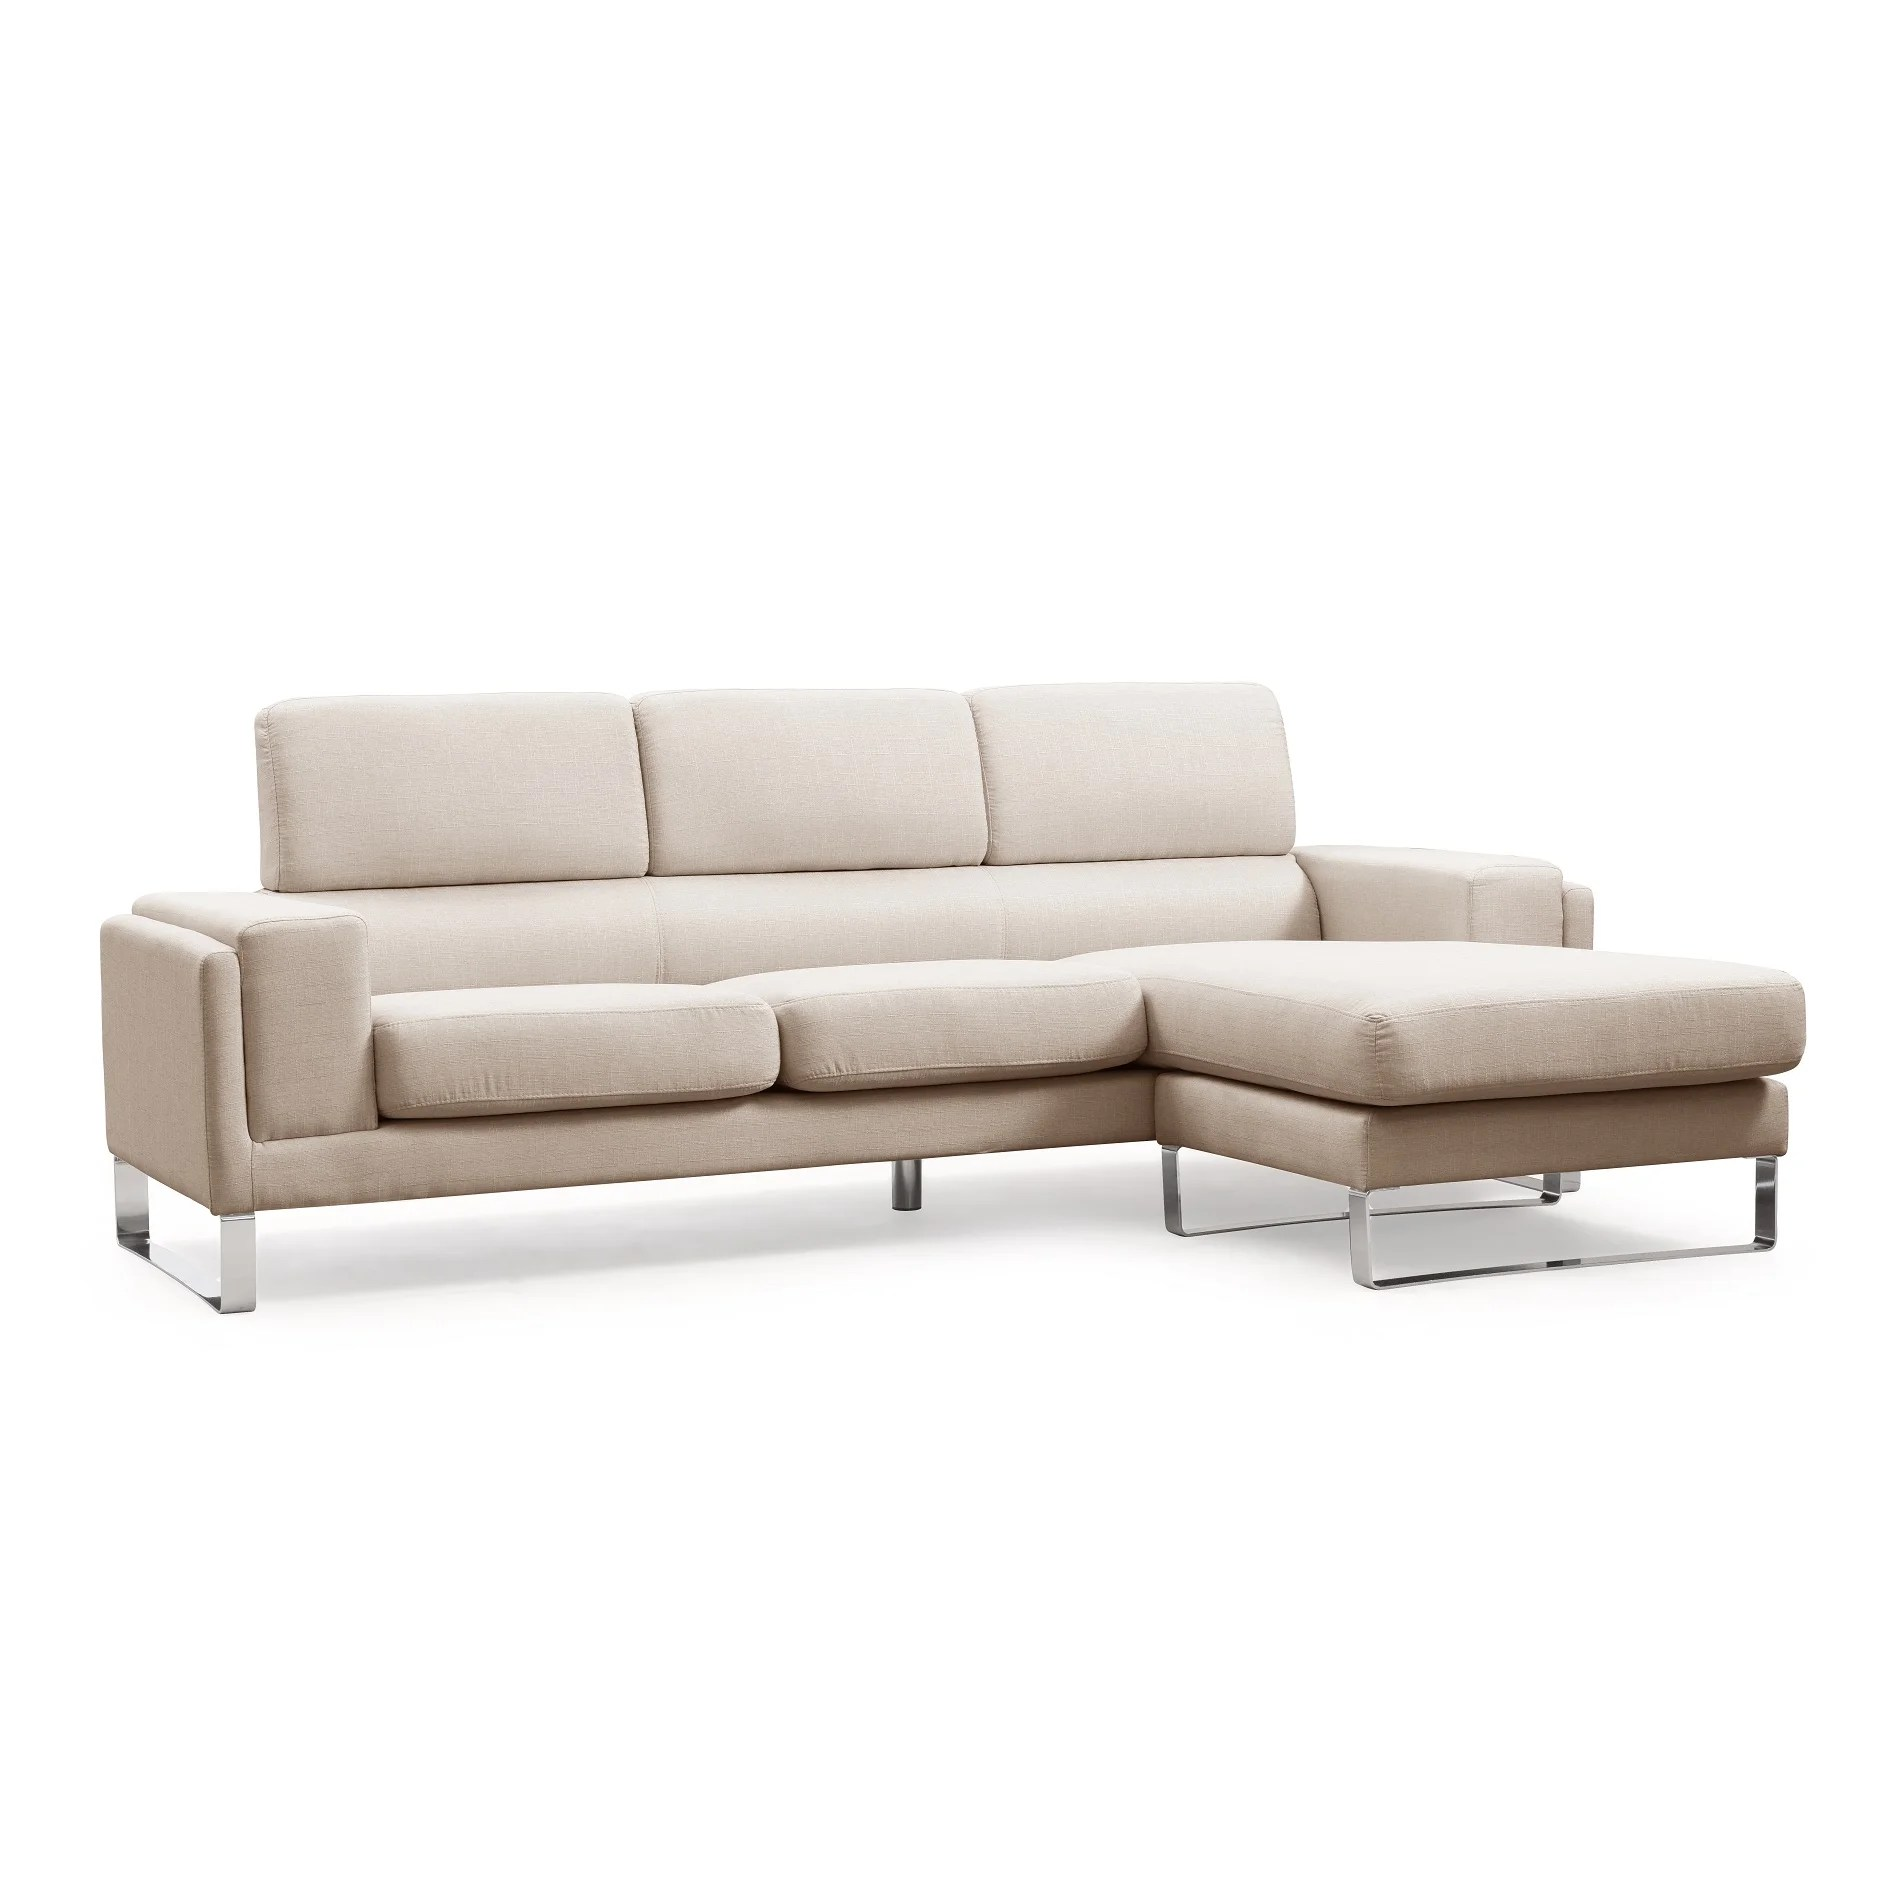 reversible sectional sofa chaise cheap online australia container wayfair ca